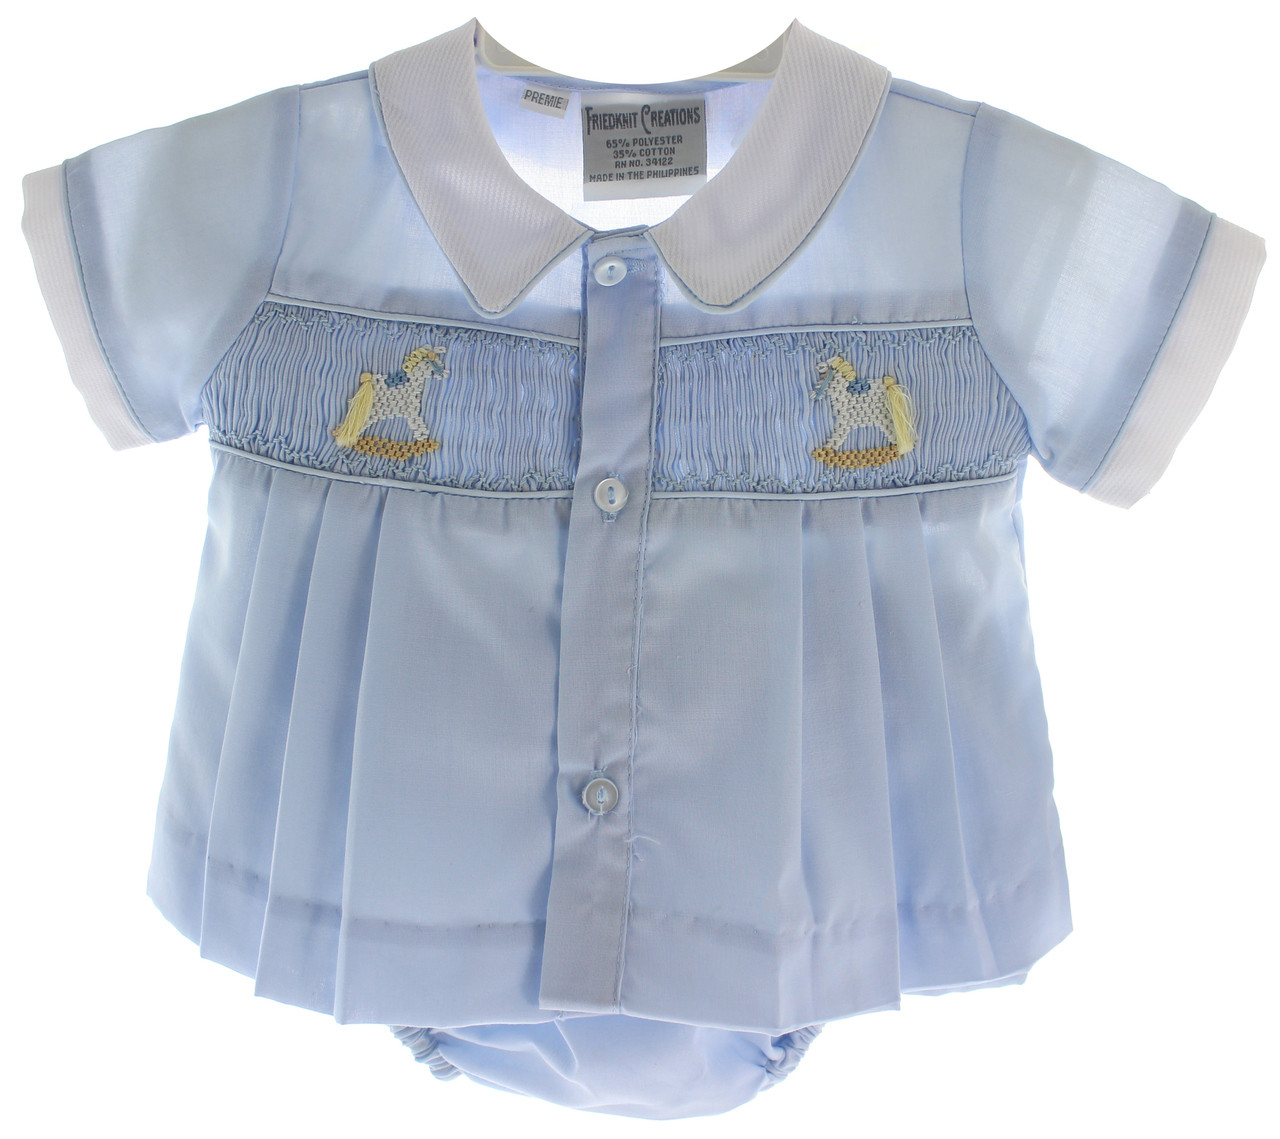 fdfeaac9 Home · Preemie Baby Clothes; Preemie Diaper Set for Boy with Rocking Horses  | Friedknit Preemie Clothes. Loading zoom